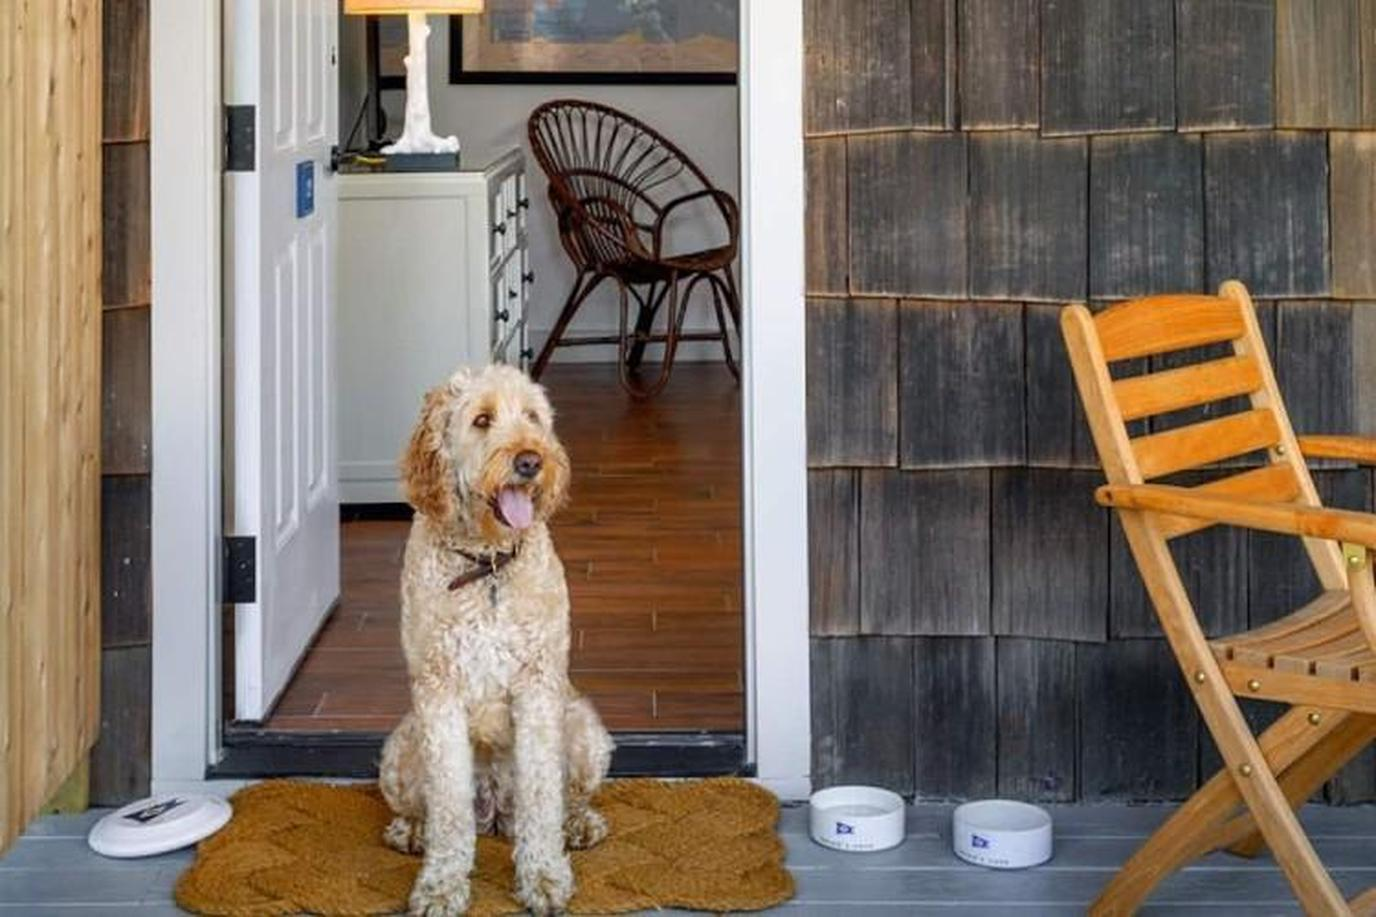 a dog at the door of a house